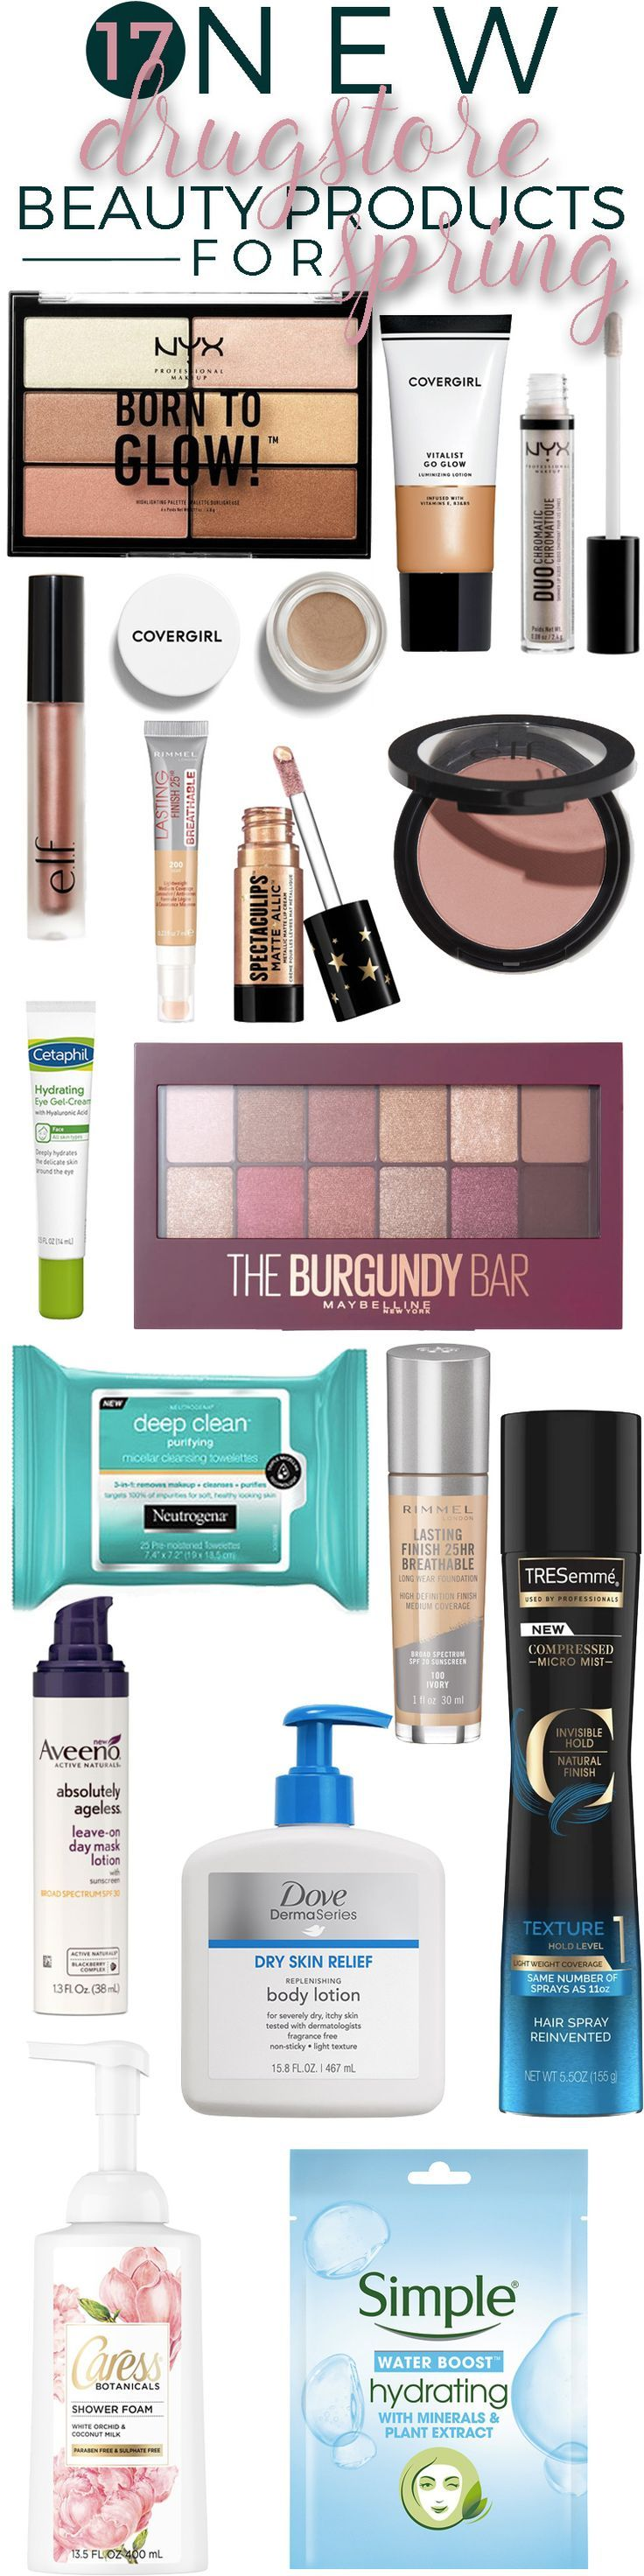 17 New Drugstore Beauty Products to Look for this Spring